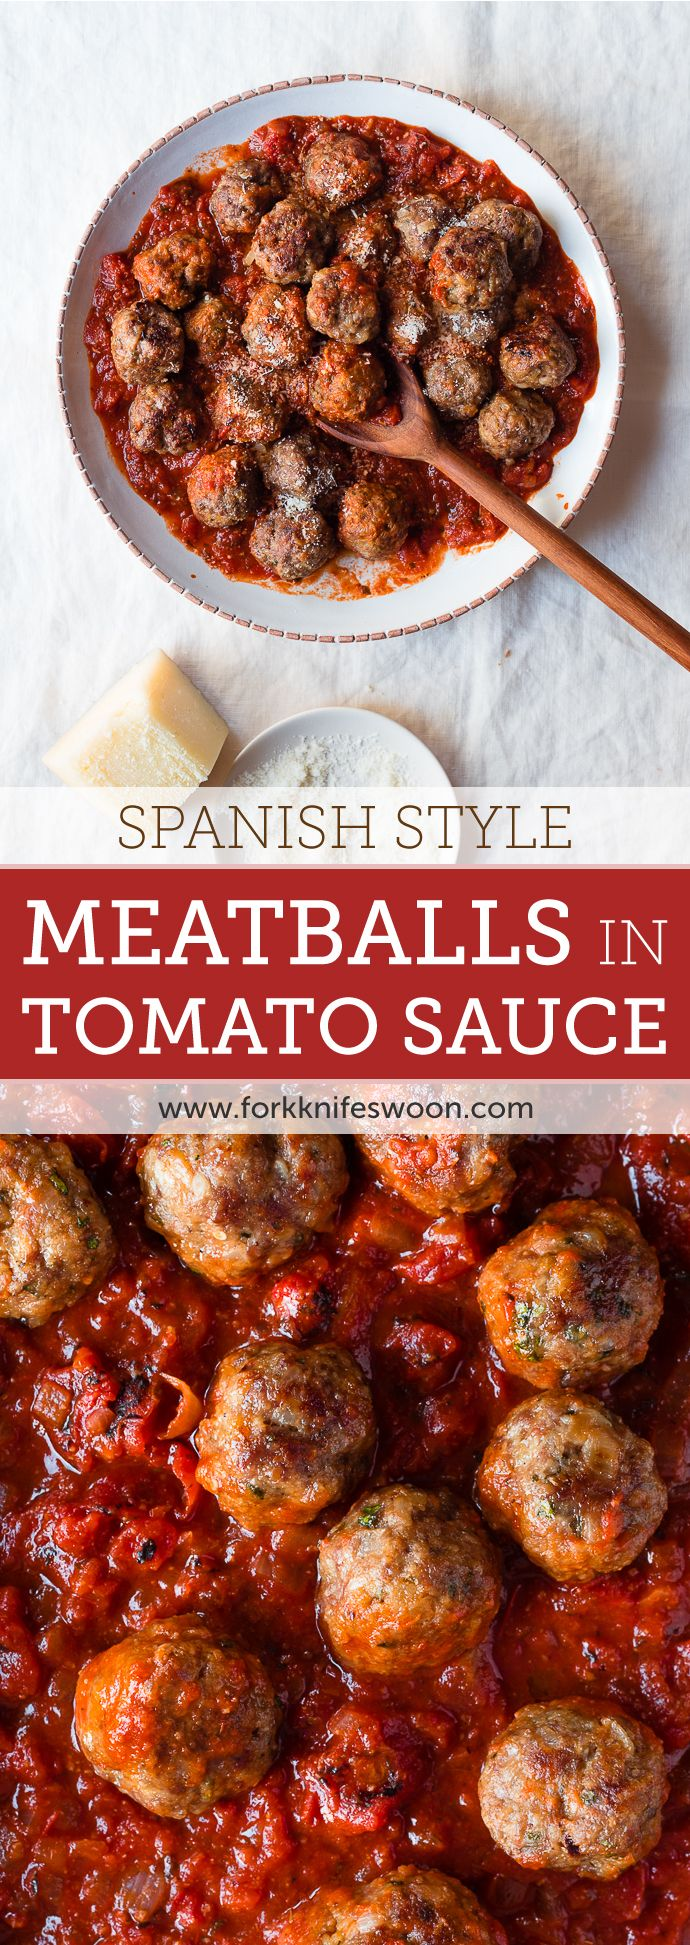 Tapas - Spanish Style Meatballs in Spicy Tomato Sauce   Fork Knife Swoon @forkknifeswoon